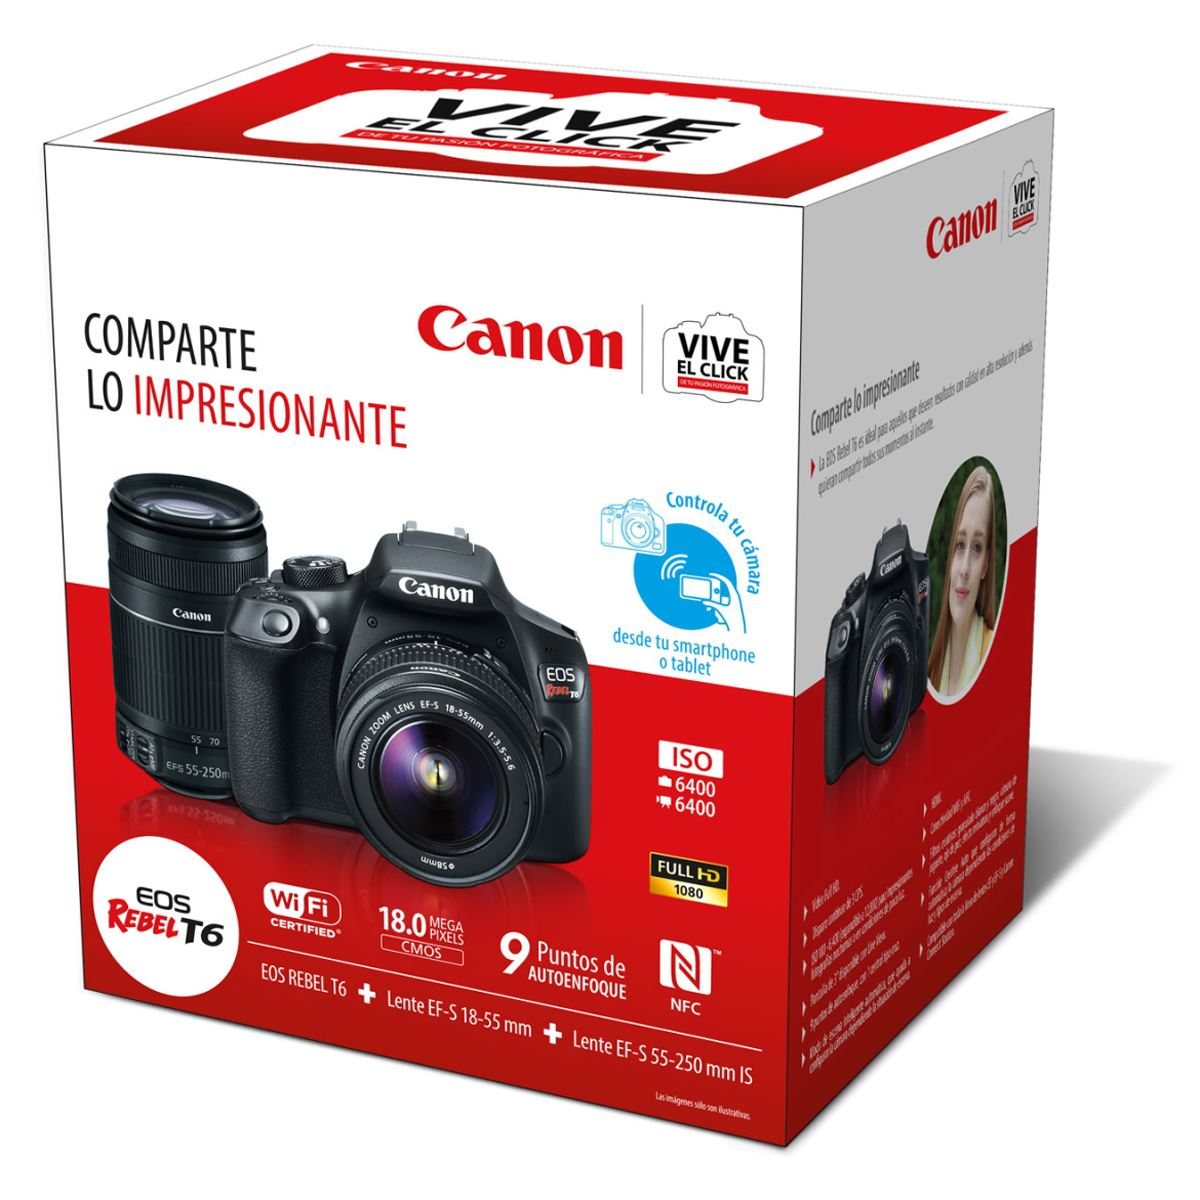 Camara Canon EOS Rebel T6 + Lente EF-S 18-55 mm + Lente EF-S 55-250 mm IS